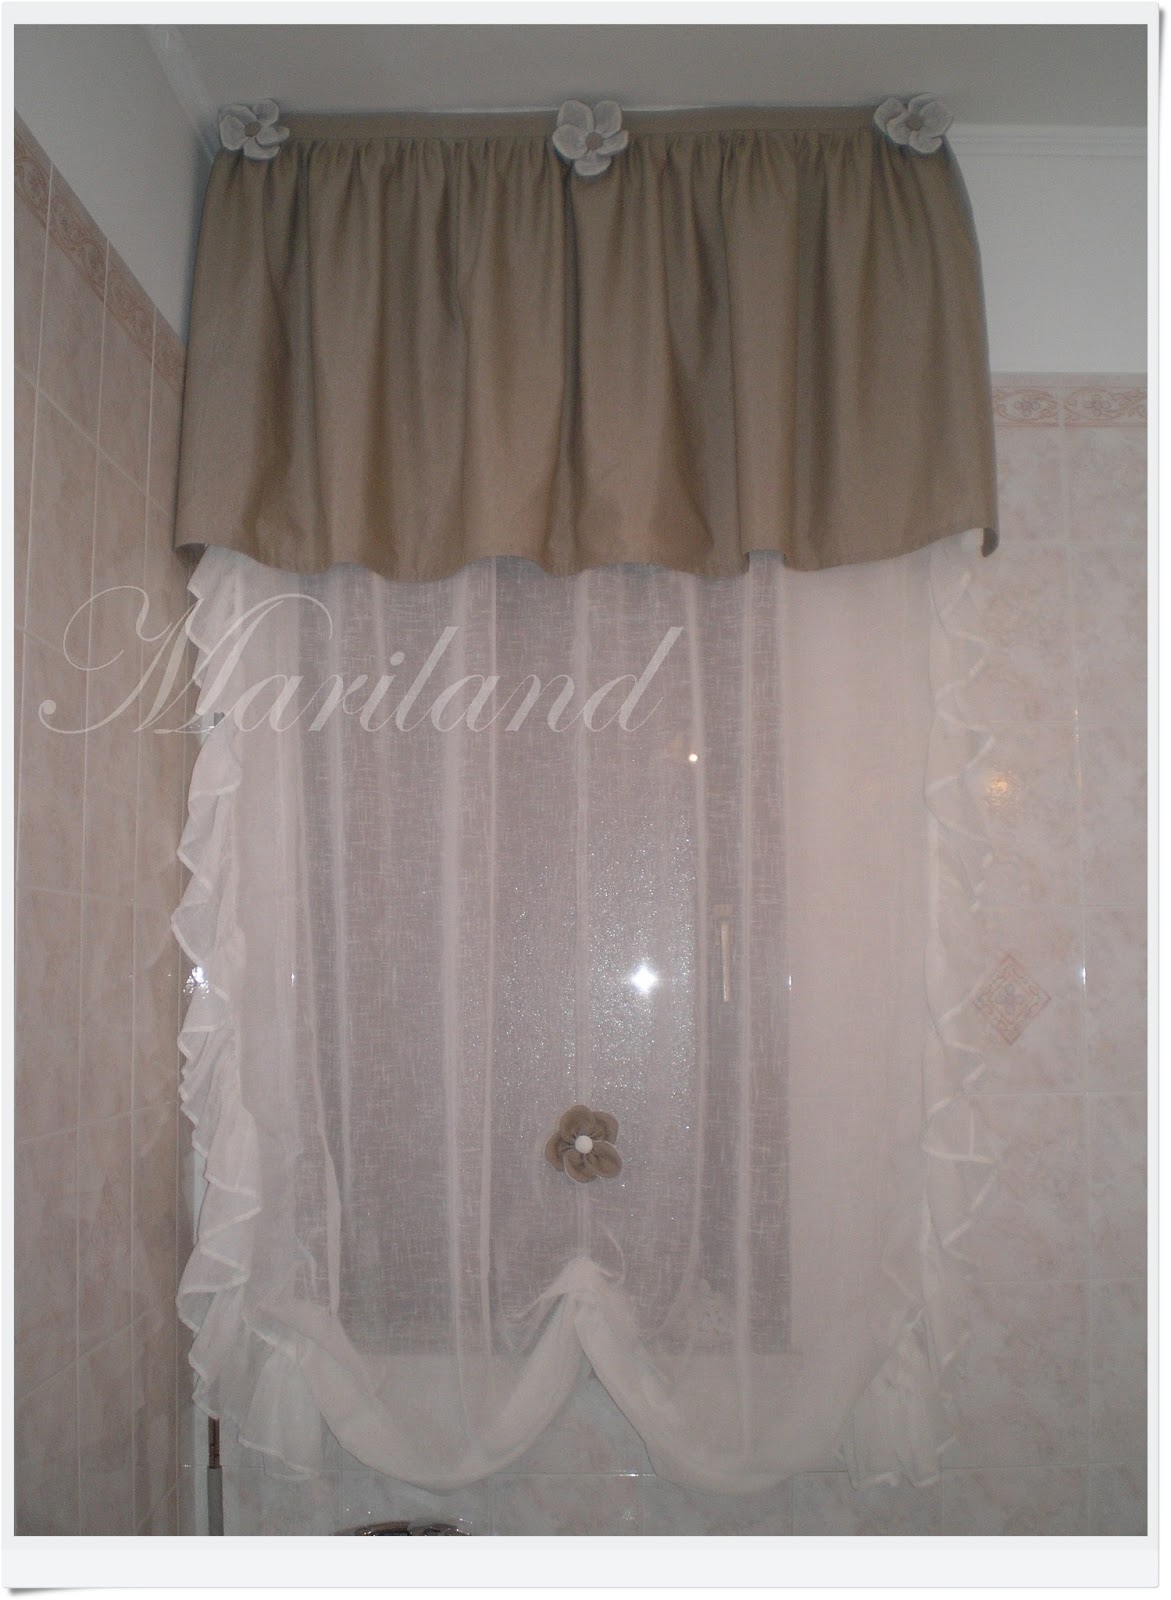 Mariland category bagno for Cortinas maison du monde